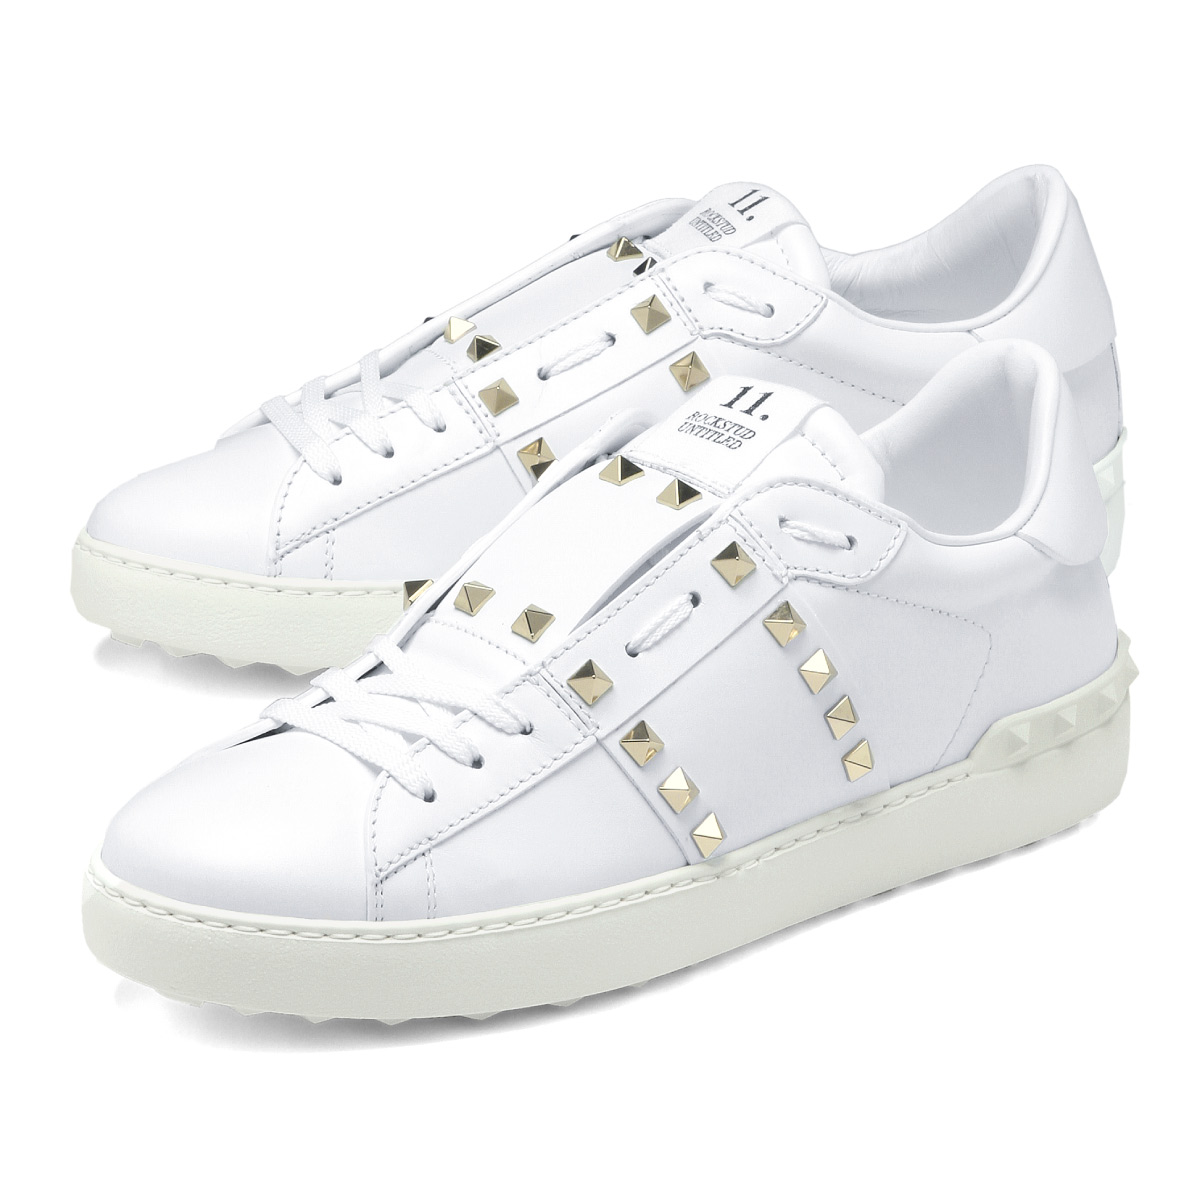 importshopdouble | Rakuten Global Market: Valentino VALENTINO shoes men PY0S0931 BHS 0BO NO.11 sneakers ROCKSTUD UNTITLED ロックスタッドアンタイトルド BIANCO white